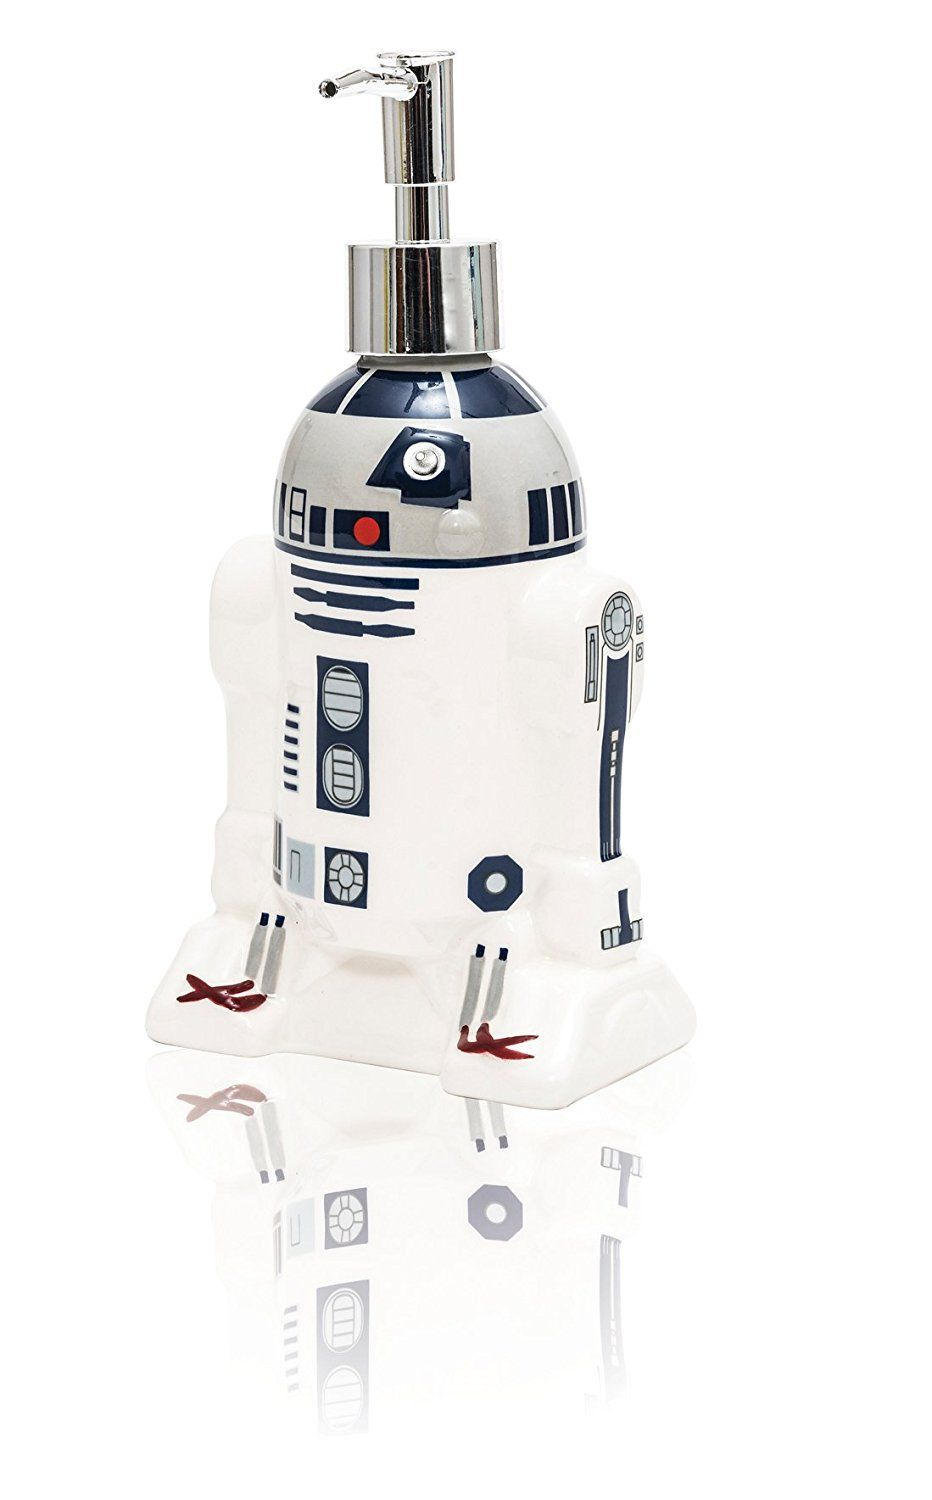 Star Wars Küchenutensilien Jabonera R2 D2 R2d2 Soap Dispenser Soap Star Wars